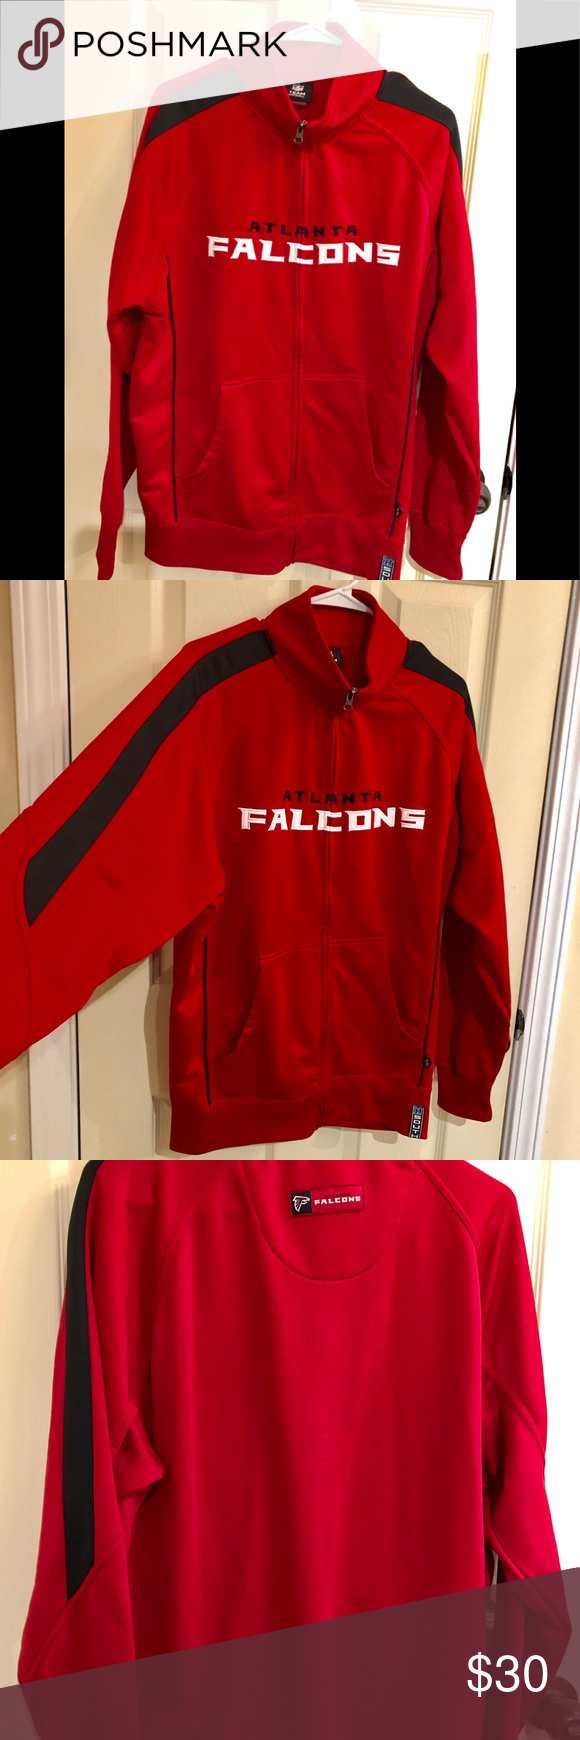 Official Red Falcons Jacket In 2020 Vintage Jacket Clothes Design Vintage Windbreaker